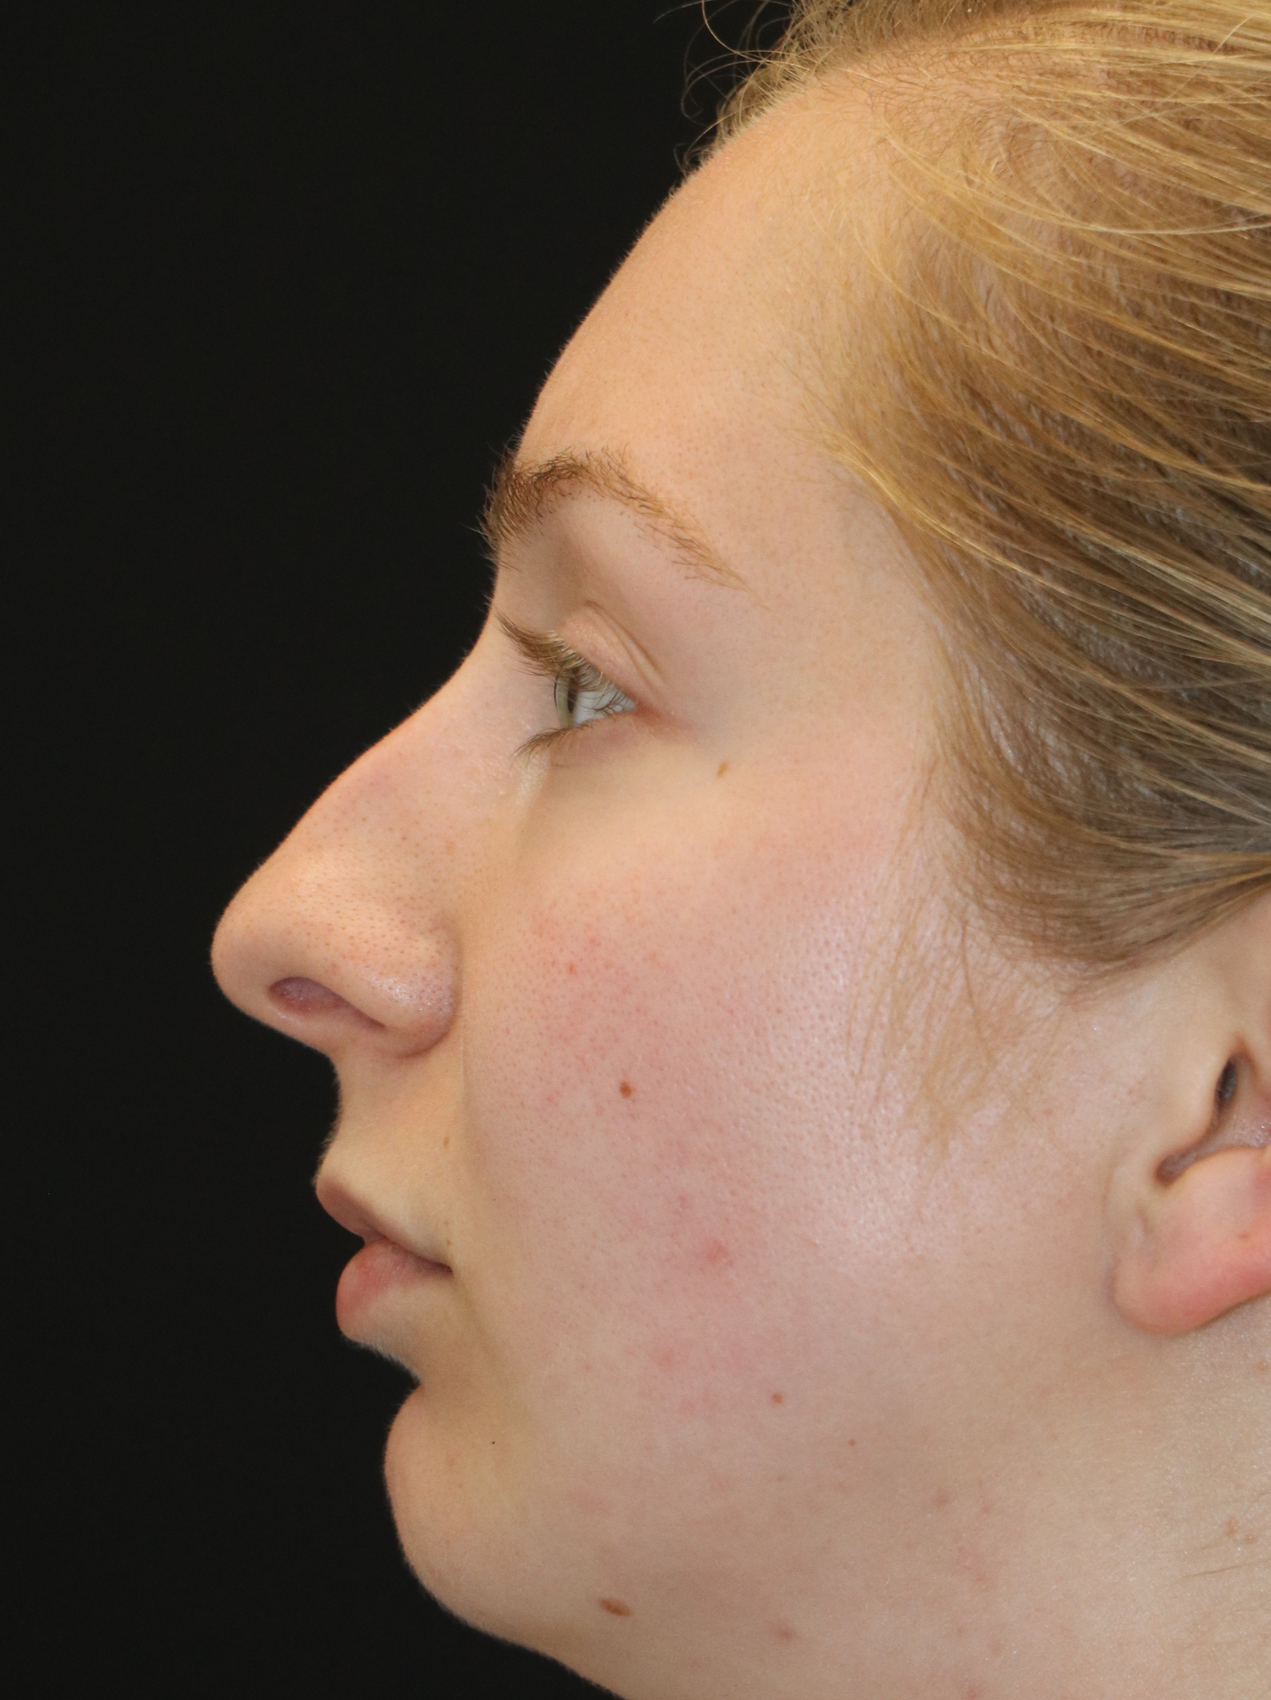 SEATTLE, WA - Rhinoplasty Expert this patient is a good candidate for non-surgical rhinoplasty